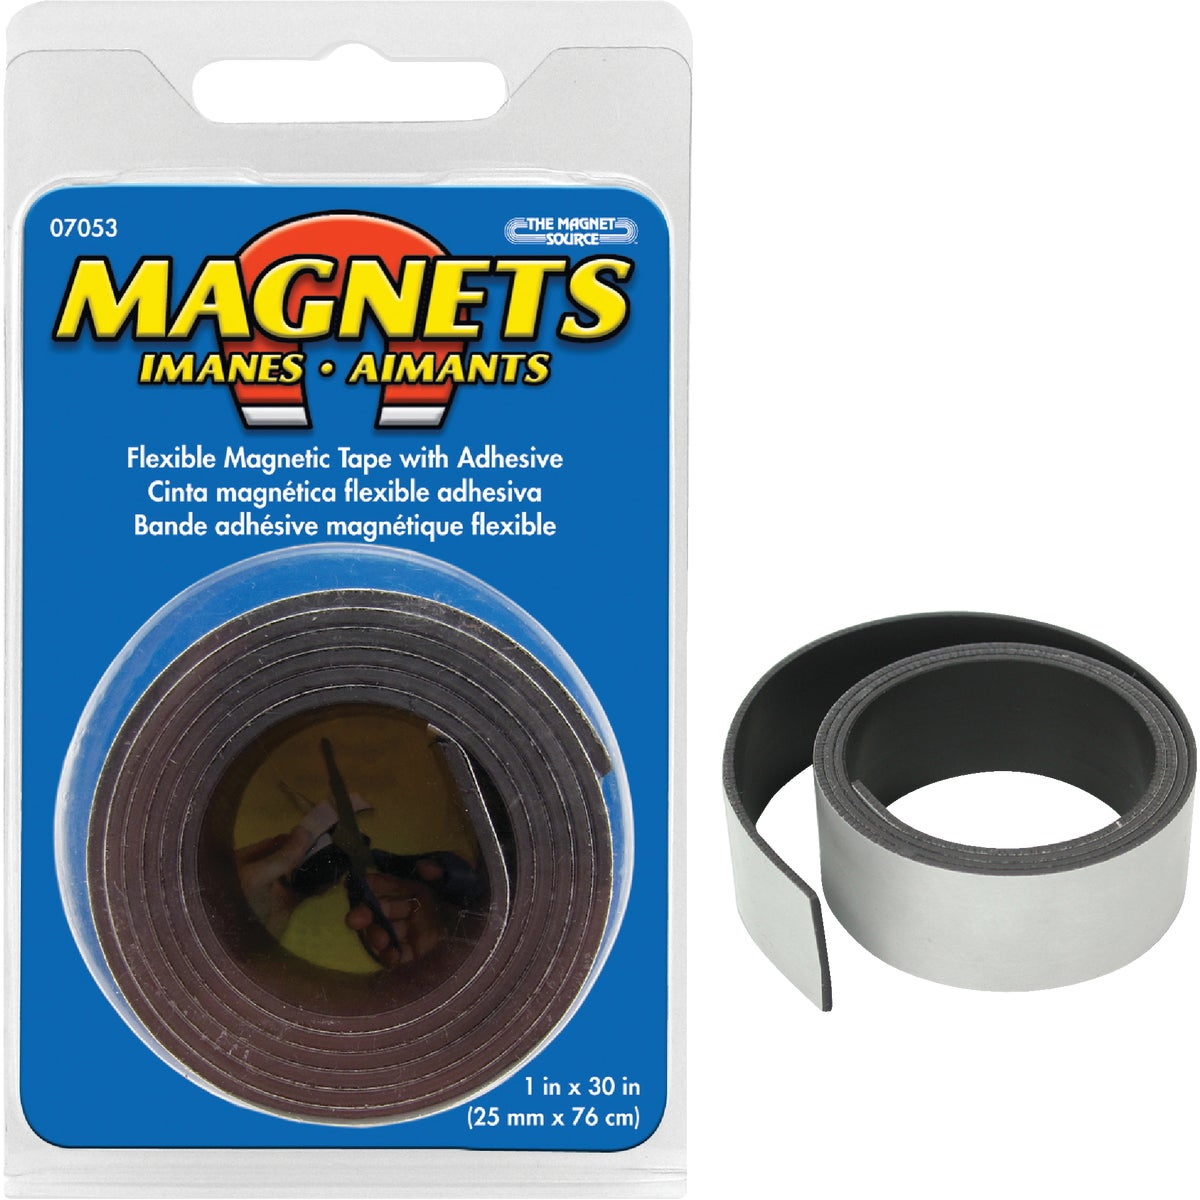 1X30 MAGNETIC TAPE